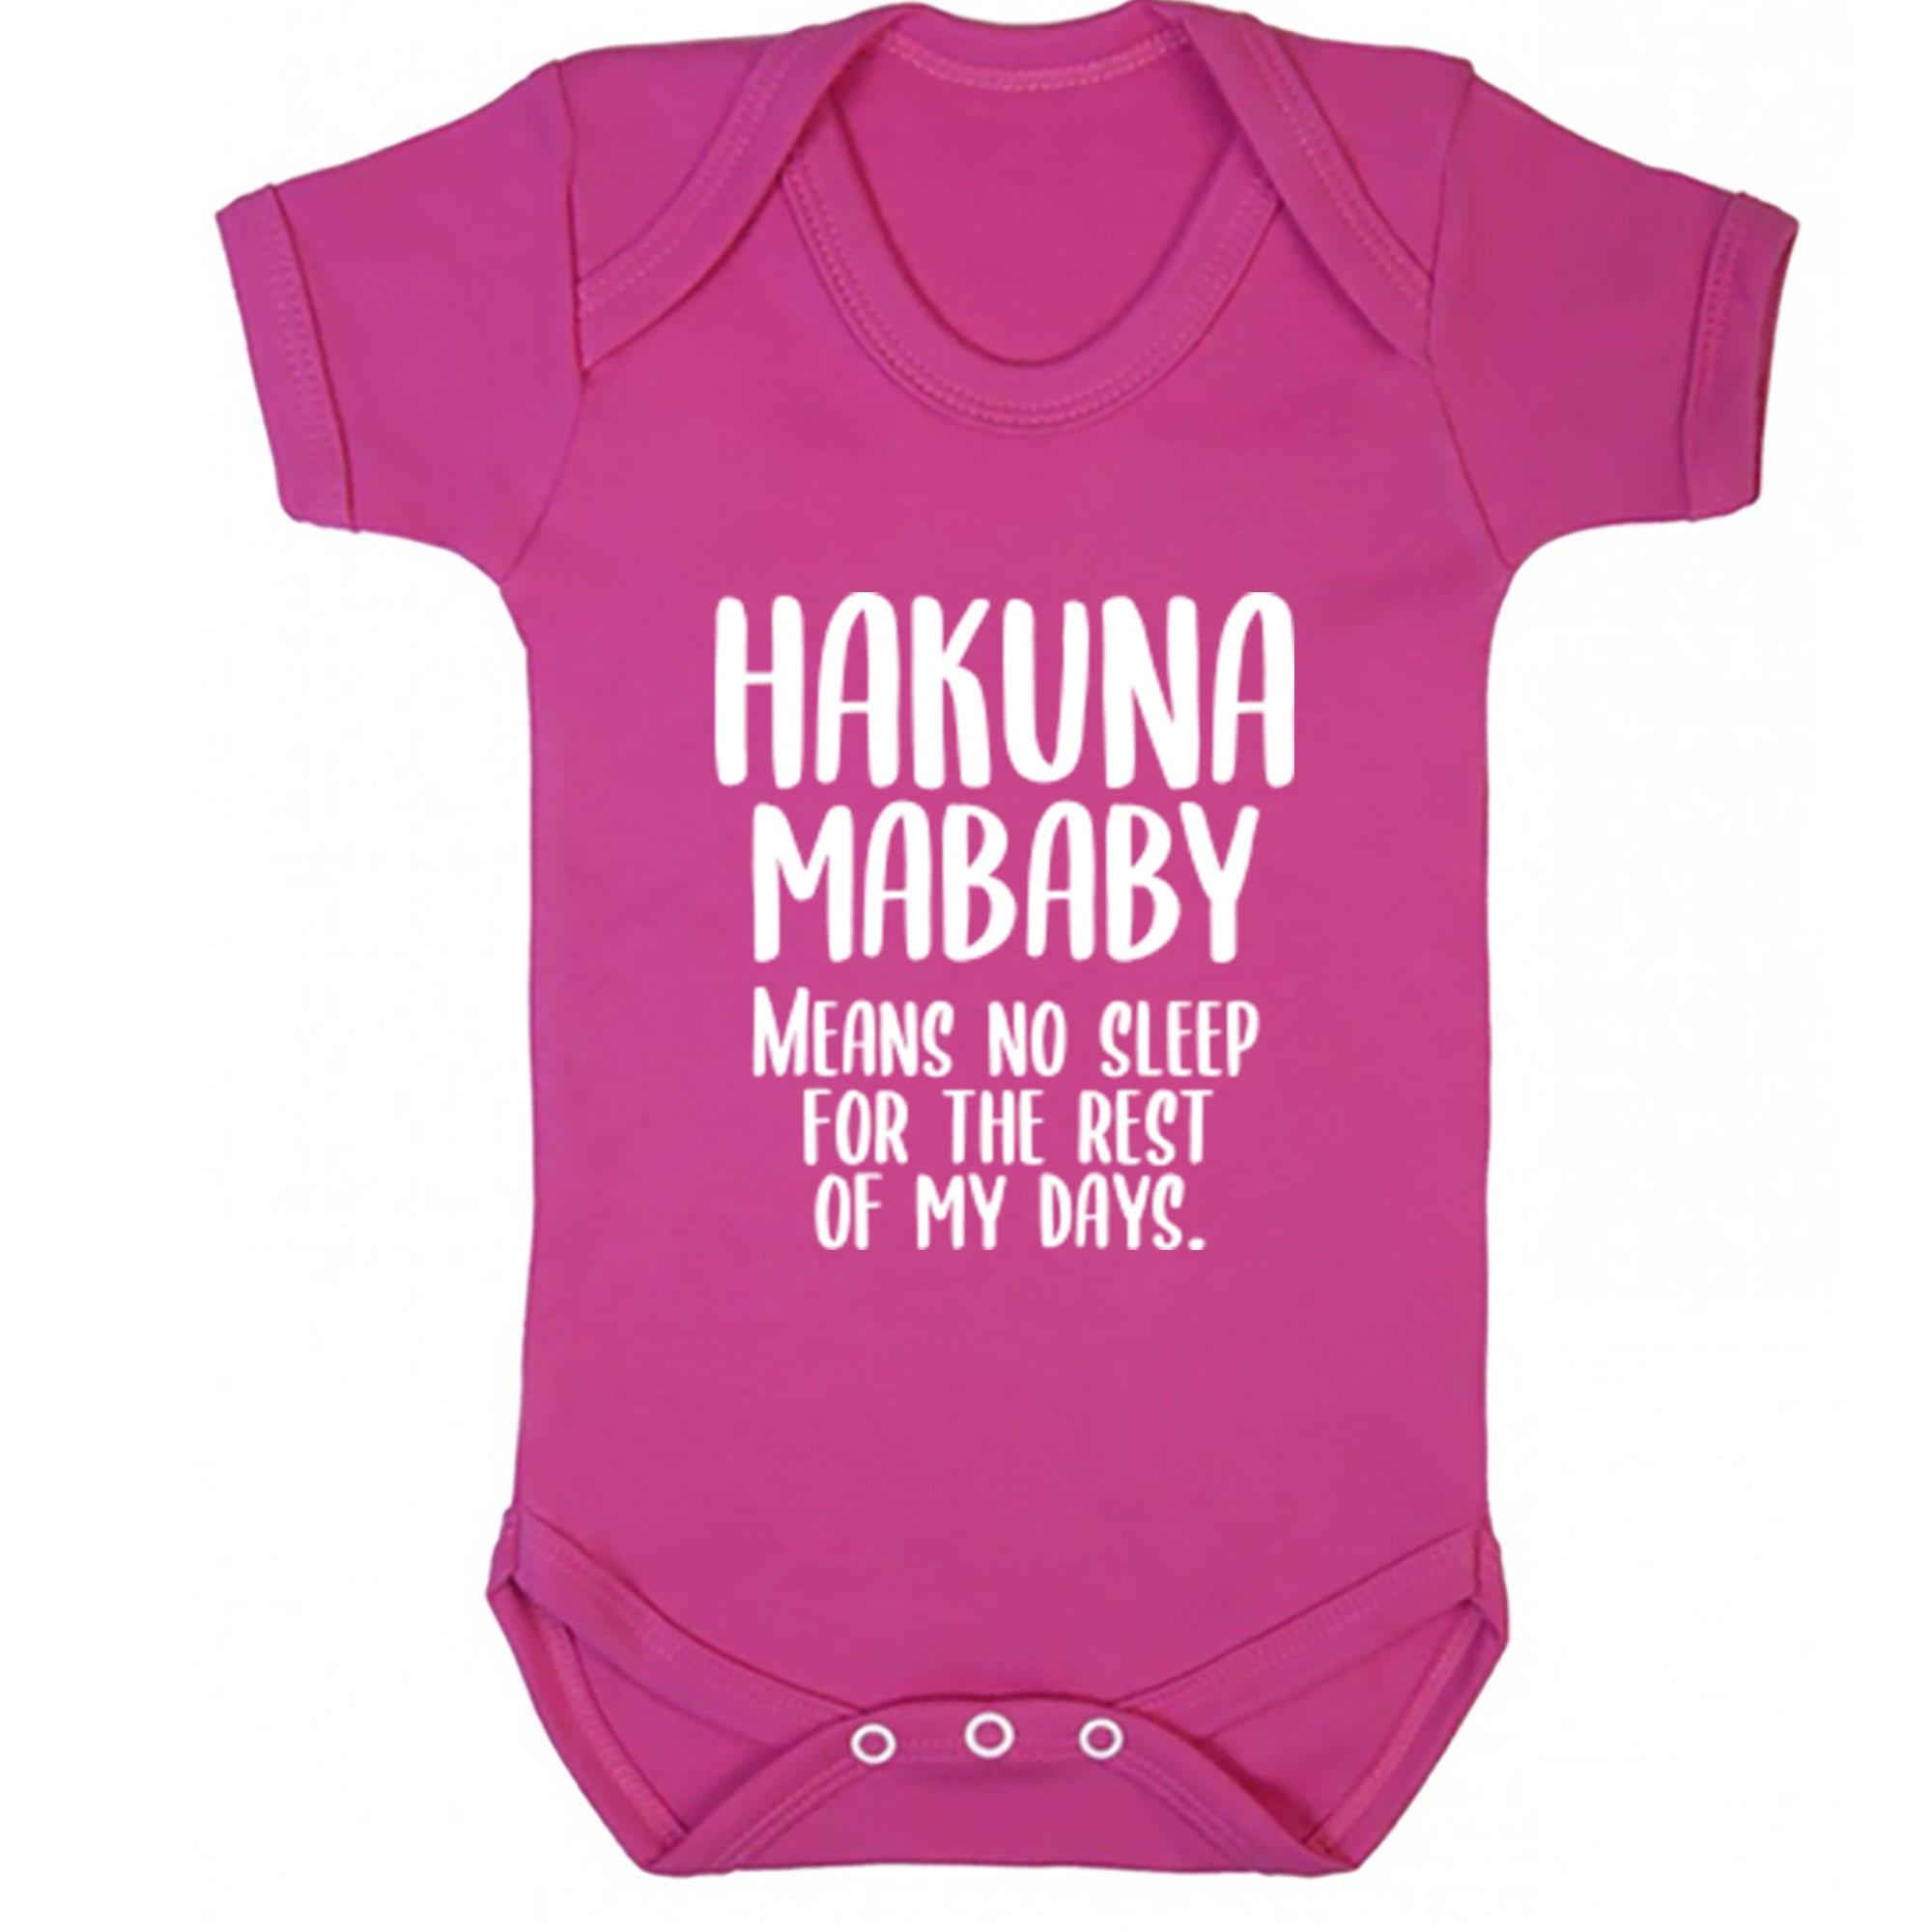 Hakuna Mababy Means No Sleep For The Rest Of My Days Baby Vest S0724 - Illustrated Identity Ltd.